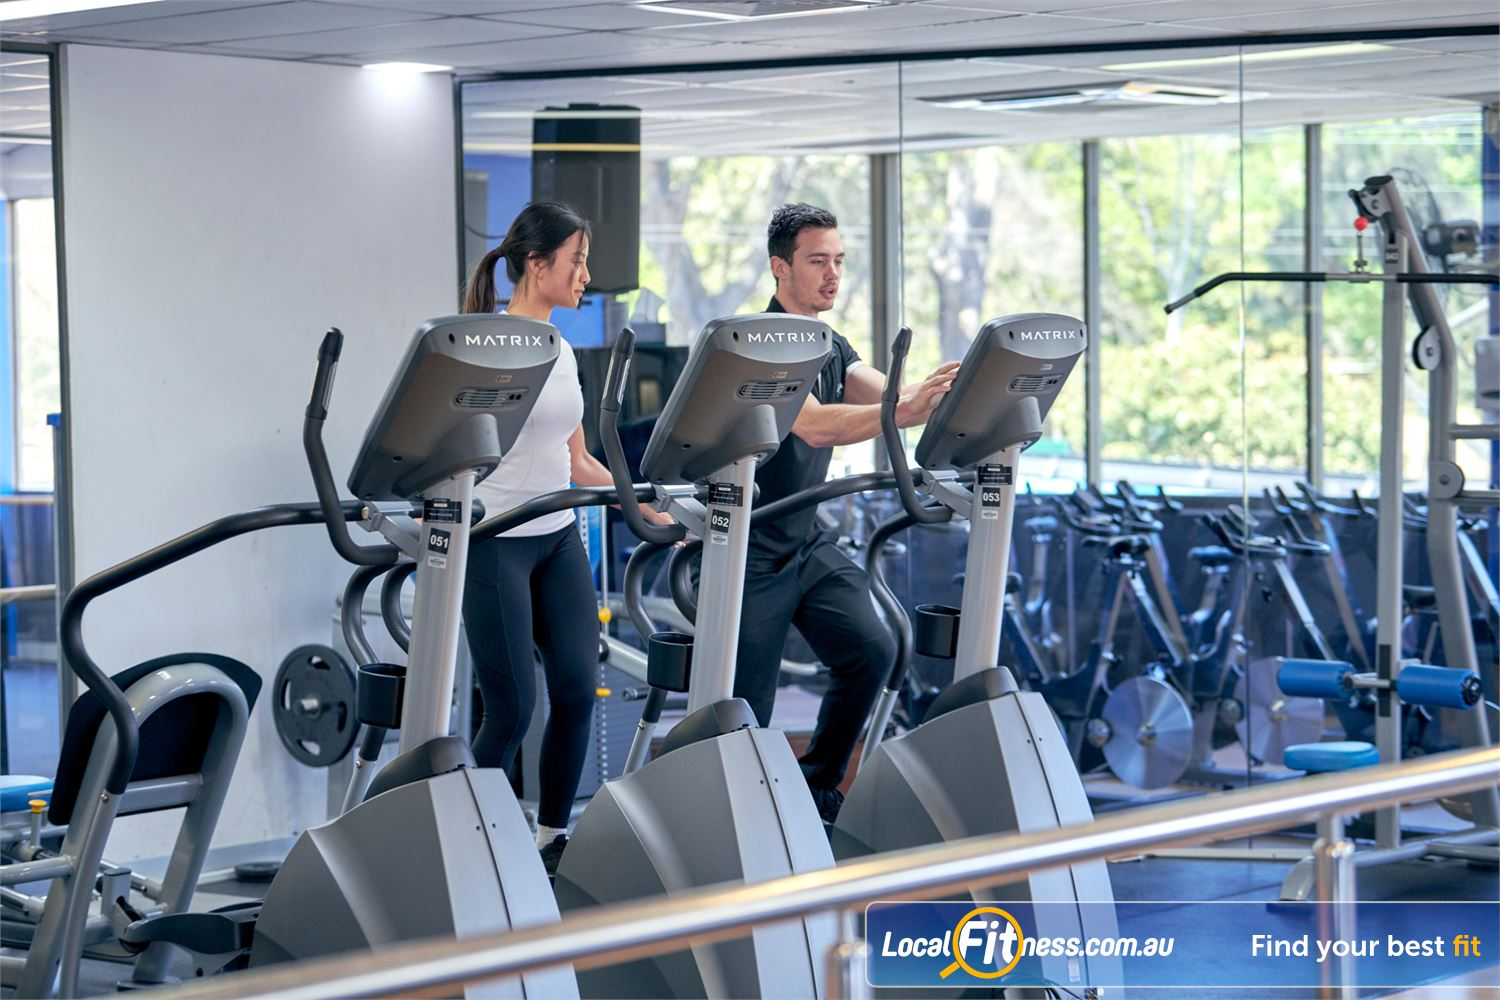 Goodlife Health Clubs Near Canterbury Plenty of cardio to choose from, overlooking the scenic greenery.